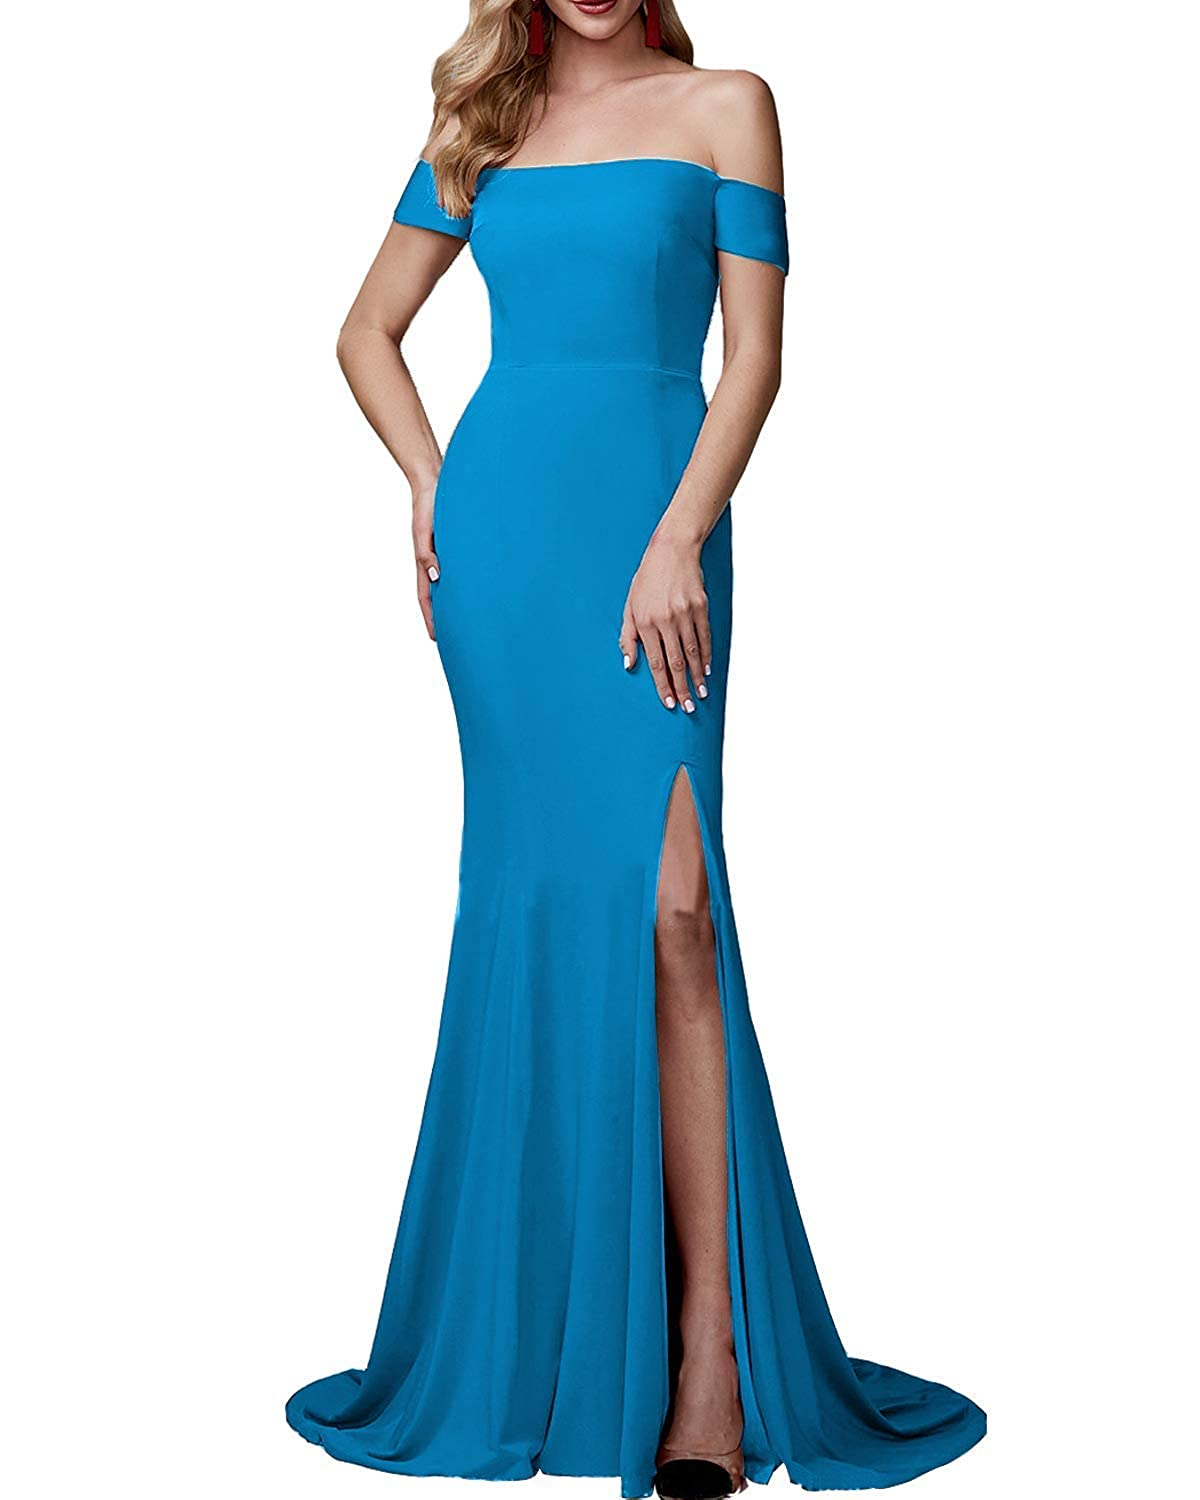 bluee Sulidi Women's Mermaid Off Shoulder Prom Dresses with High Slit Bridesmaid Evening Party Gowns C071